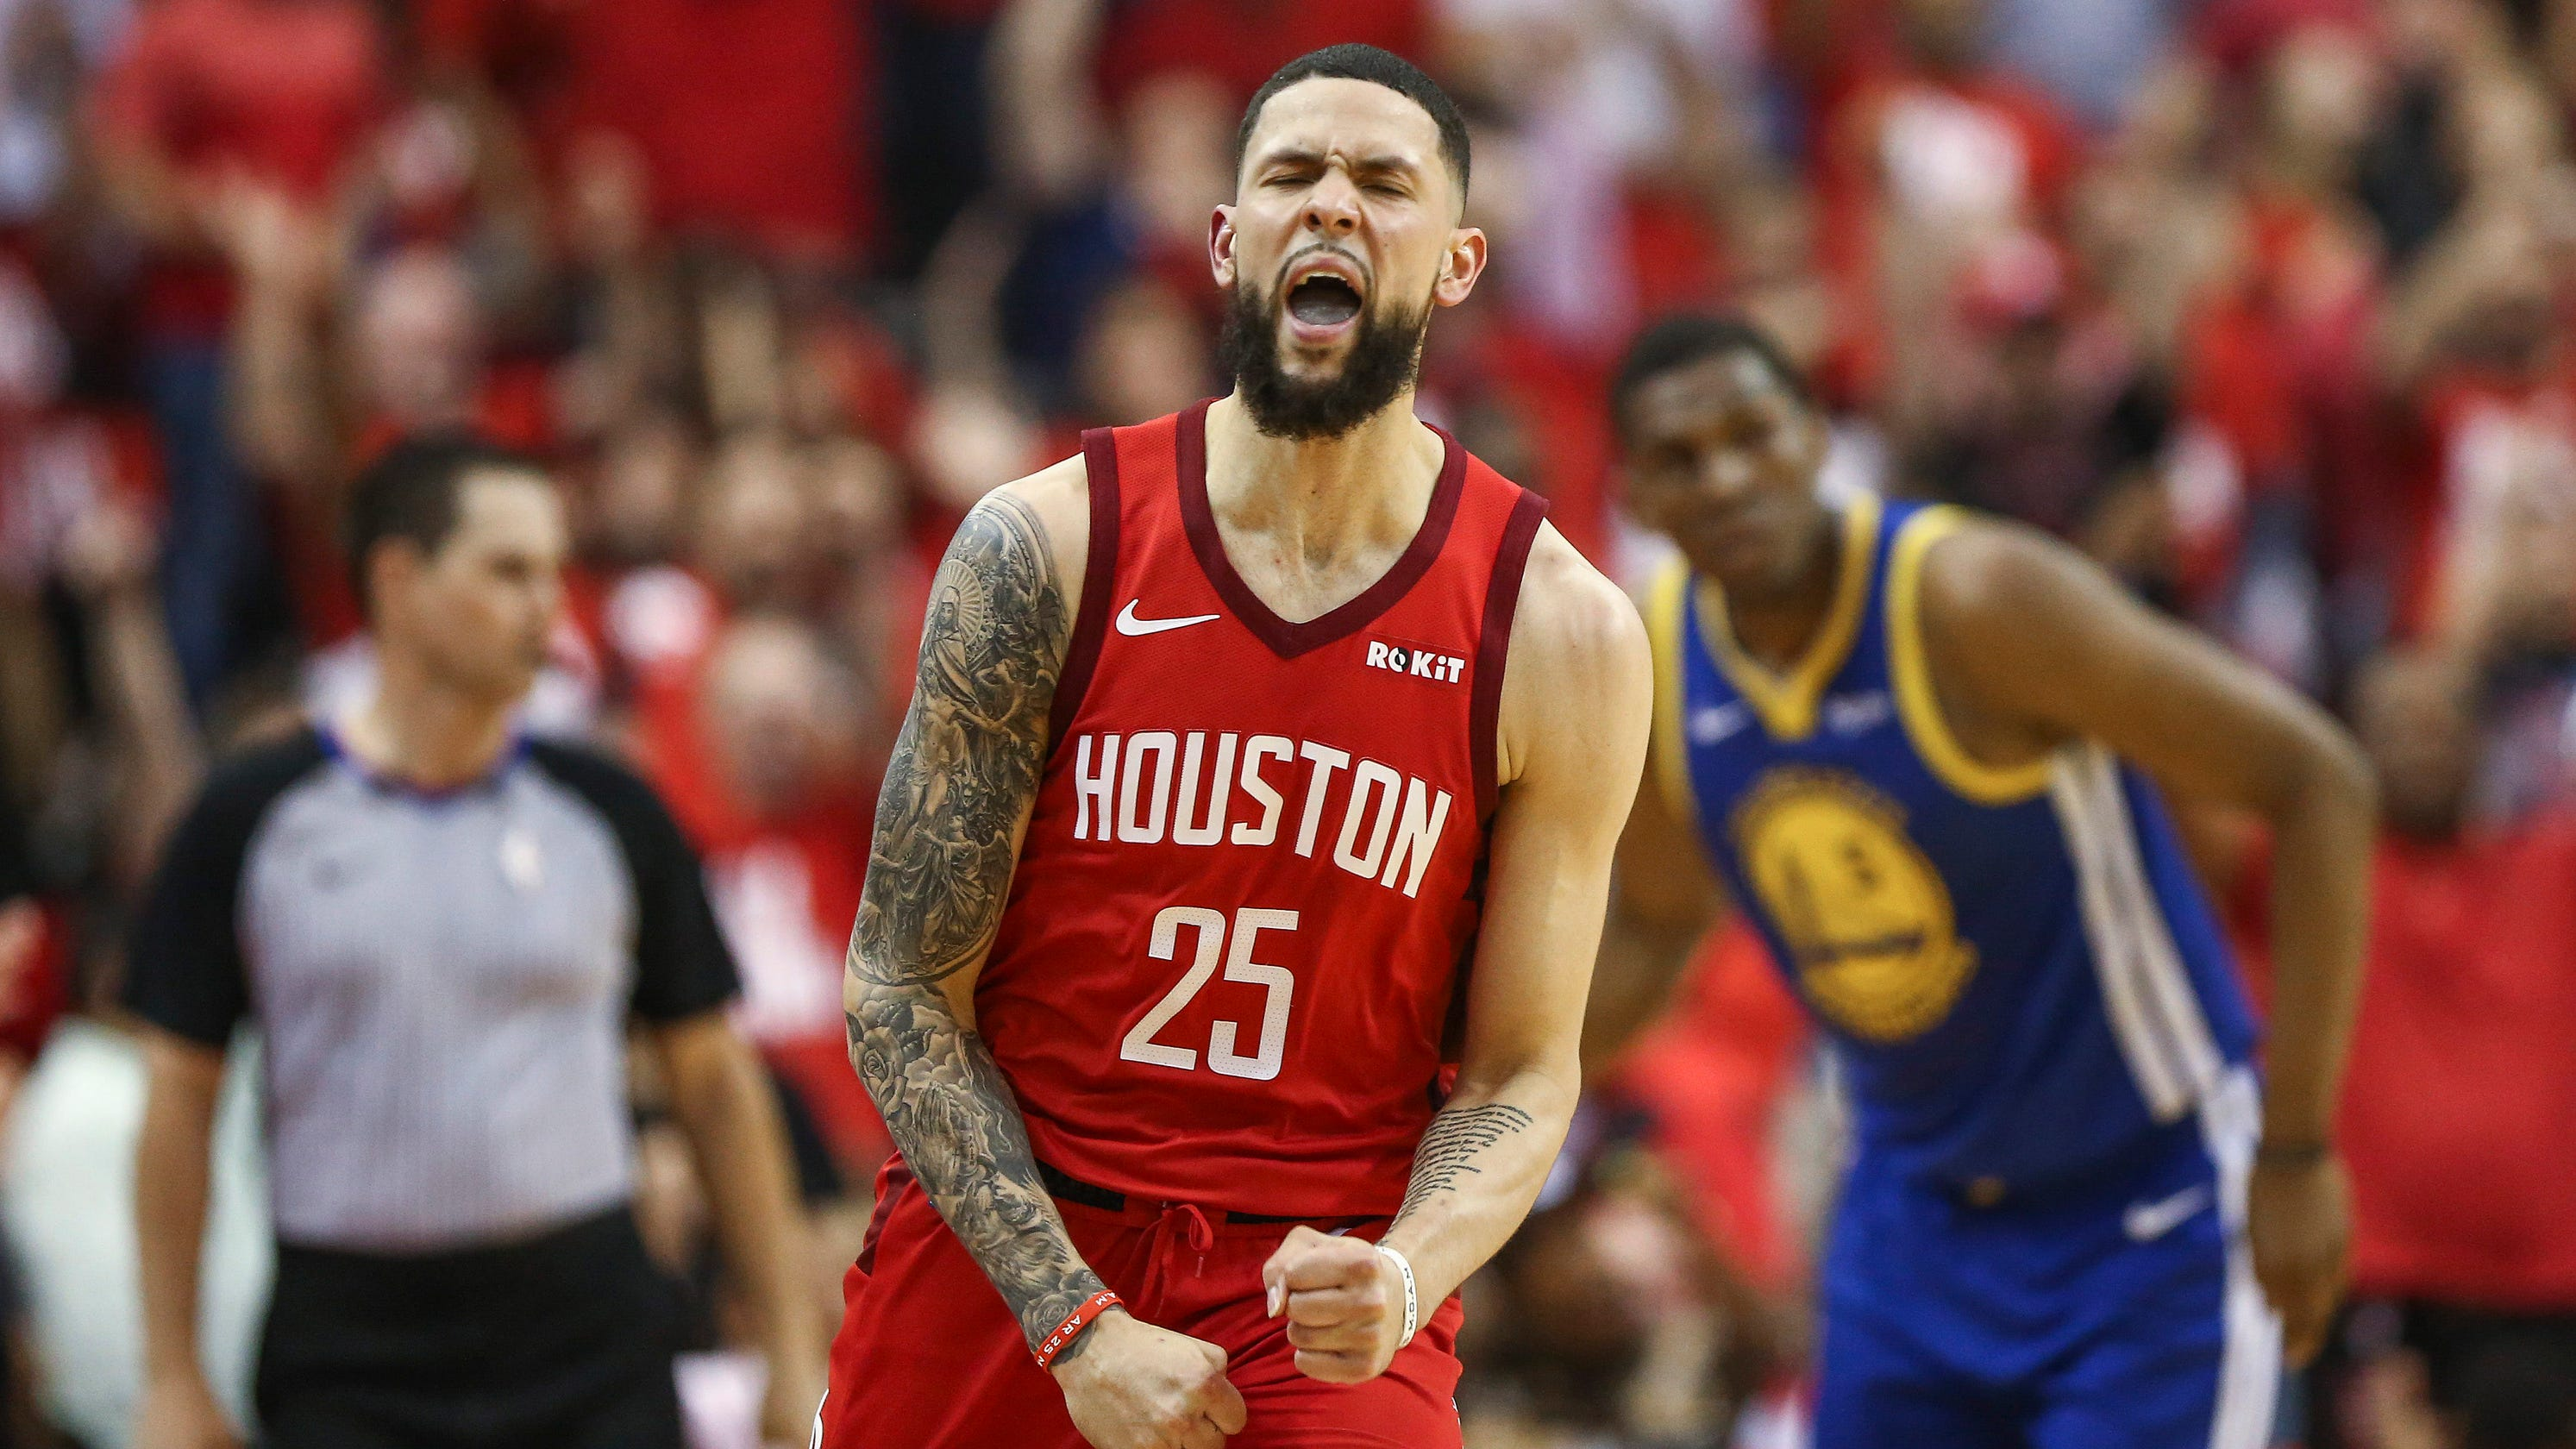 NBA Playoffs: Will Rockets-Warriors Series Go Down As One